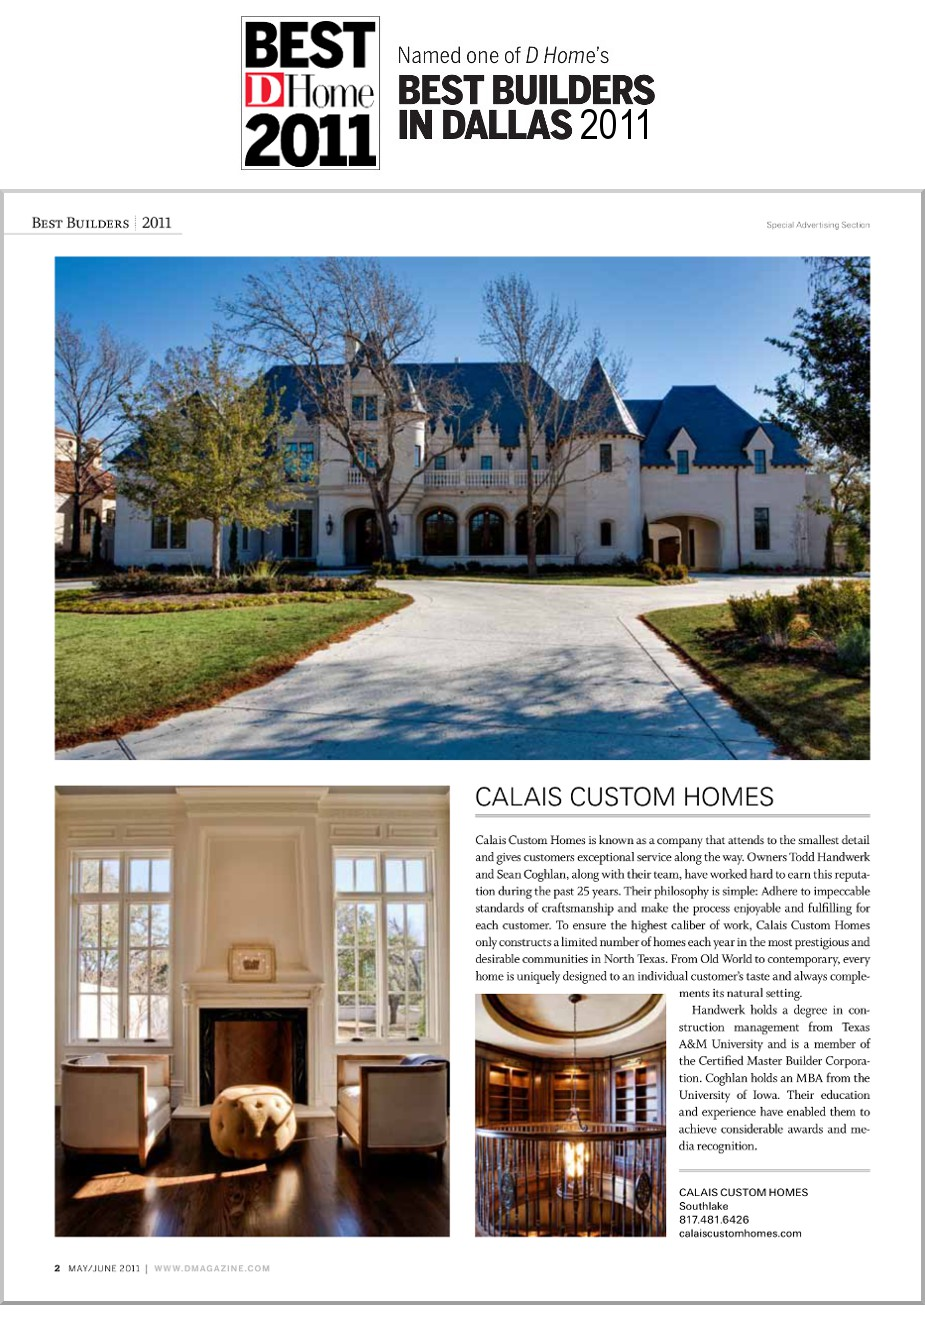 2011 DHome Best Builder Award Article